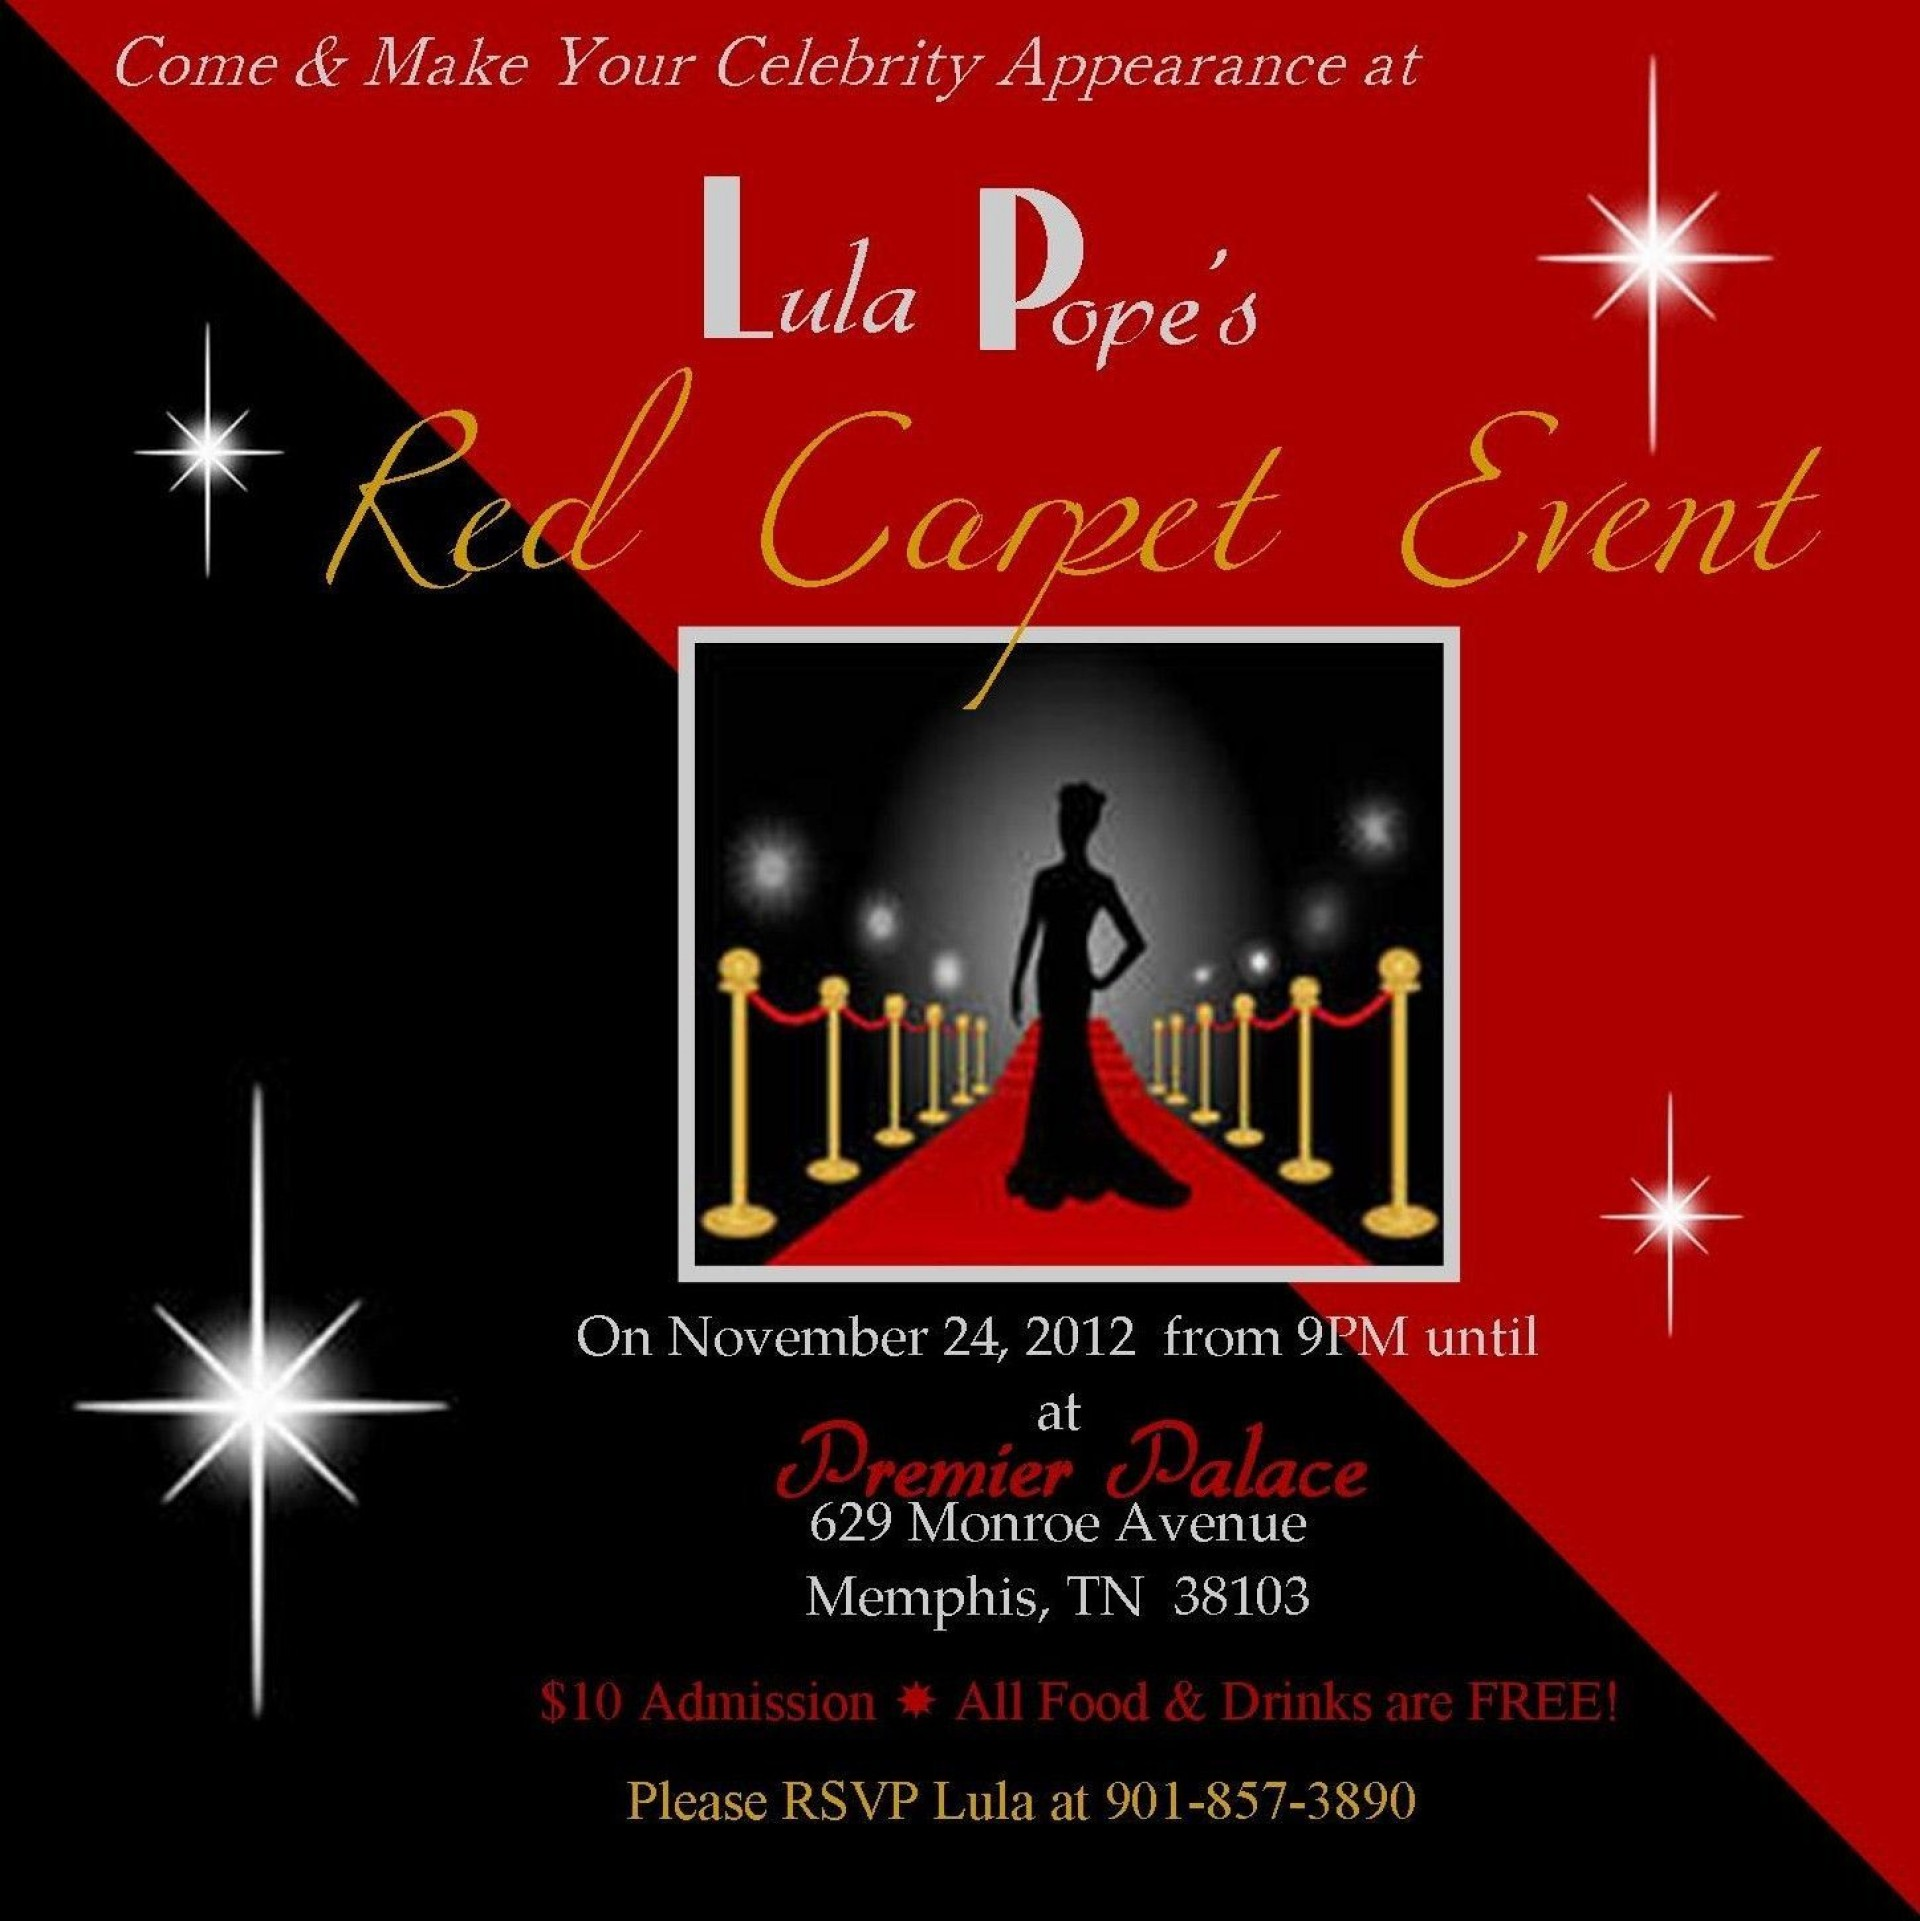 005 Archaicawful Red Carpet Invitation Template Free Highest Clarity  Download1920